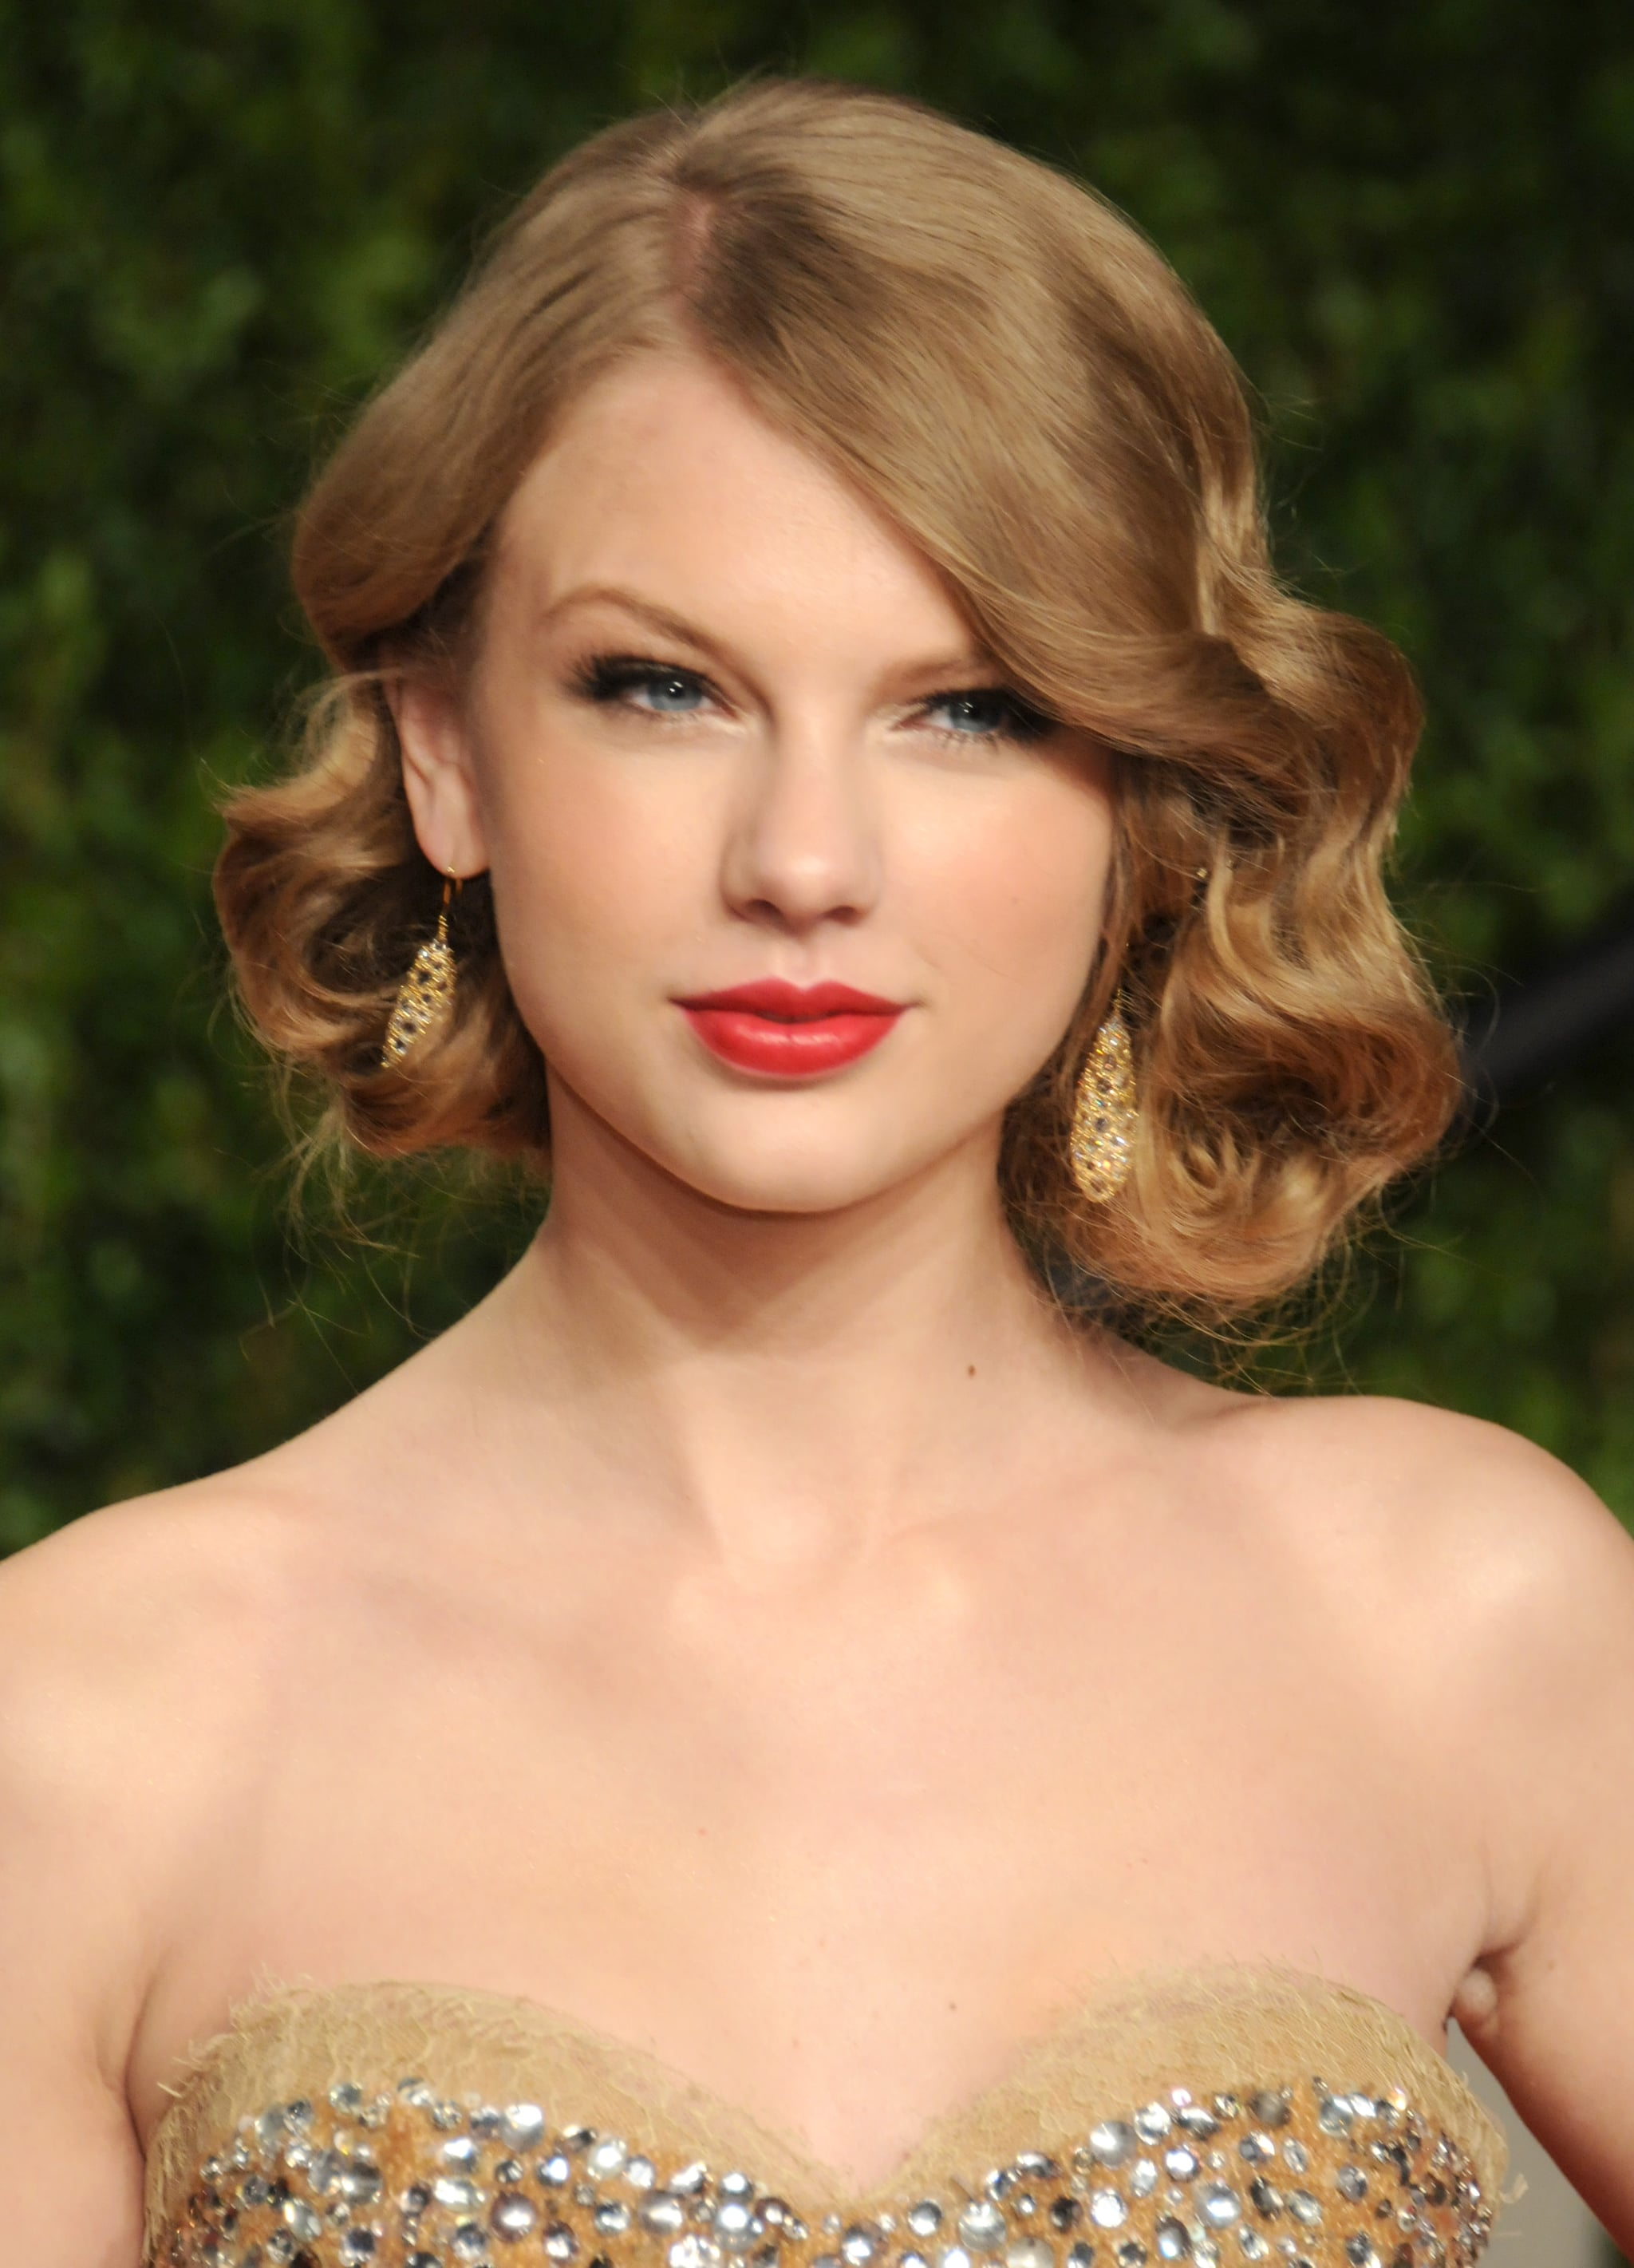 Marvelous The Faux Bob Is Made For Curly Hair Like Taylor Swift39S As It Hairstyles For Men Maxibearus